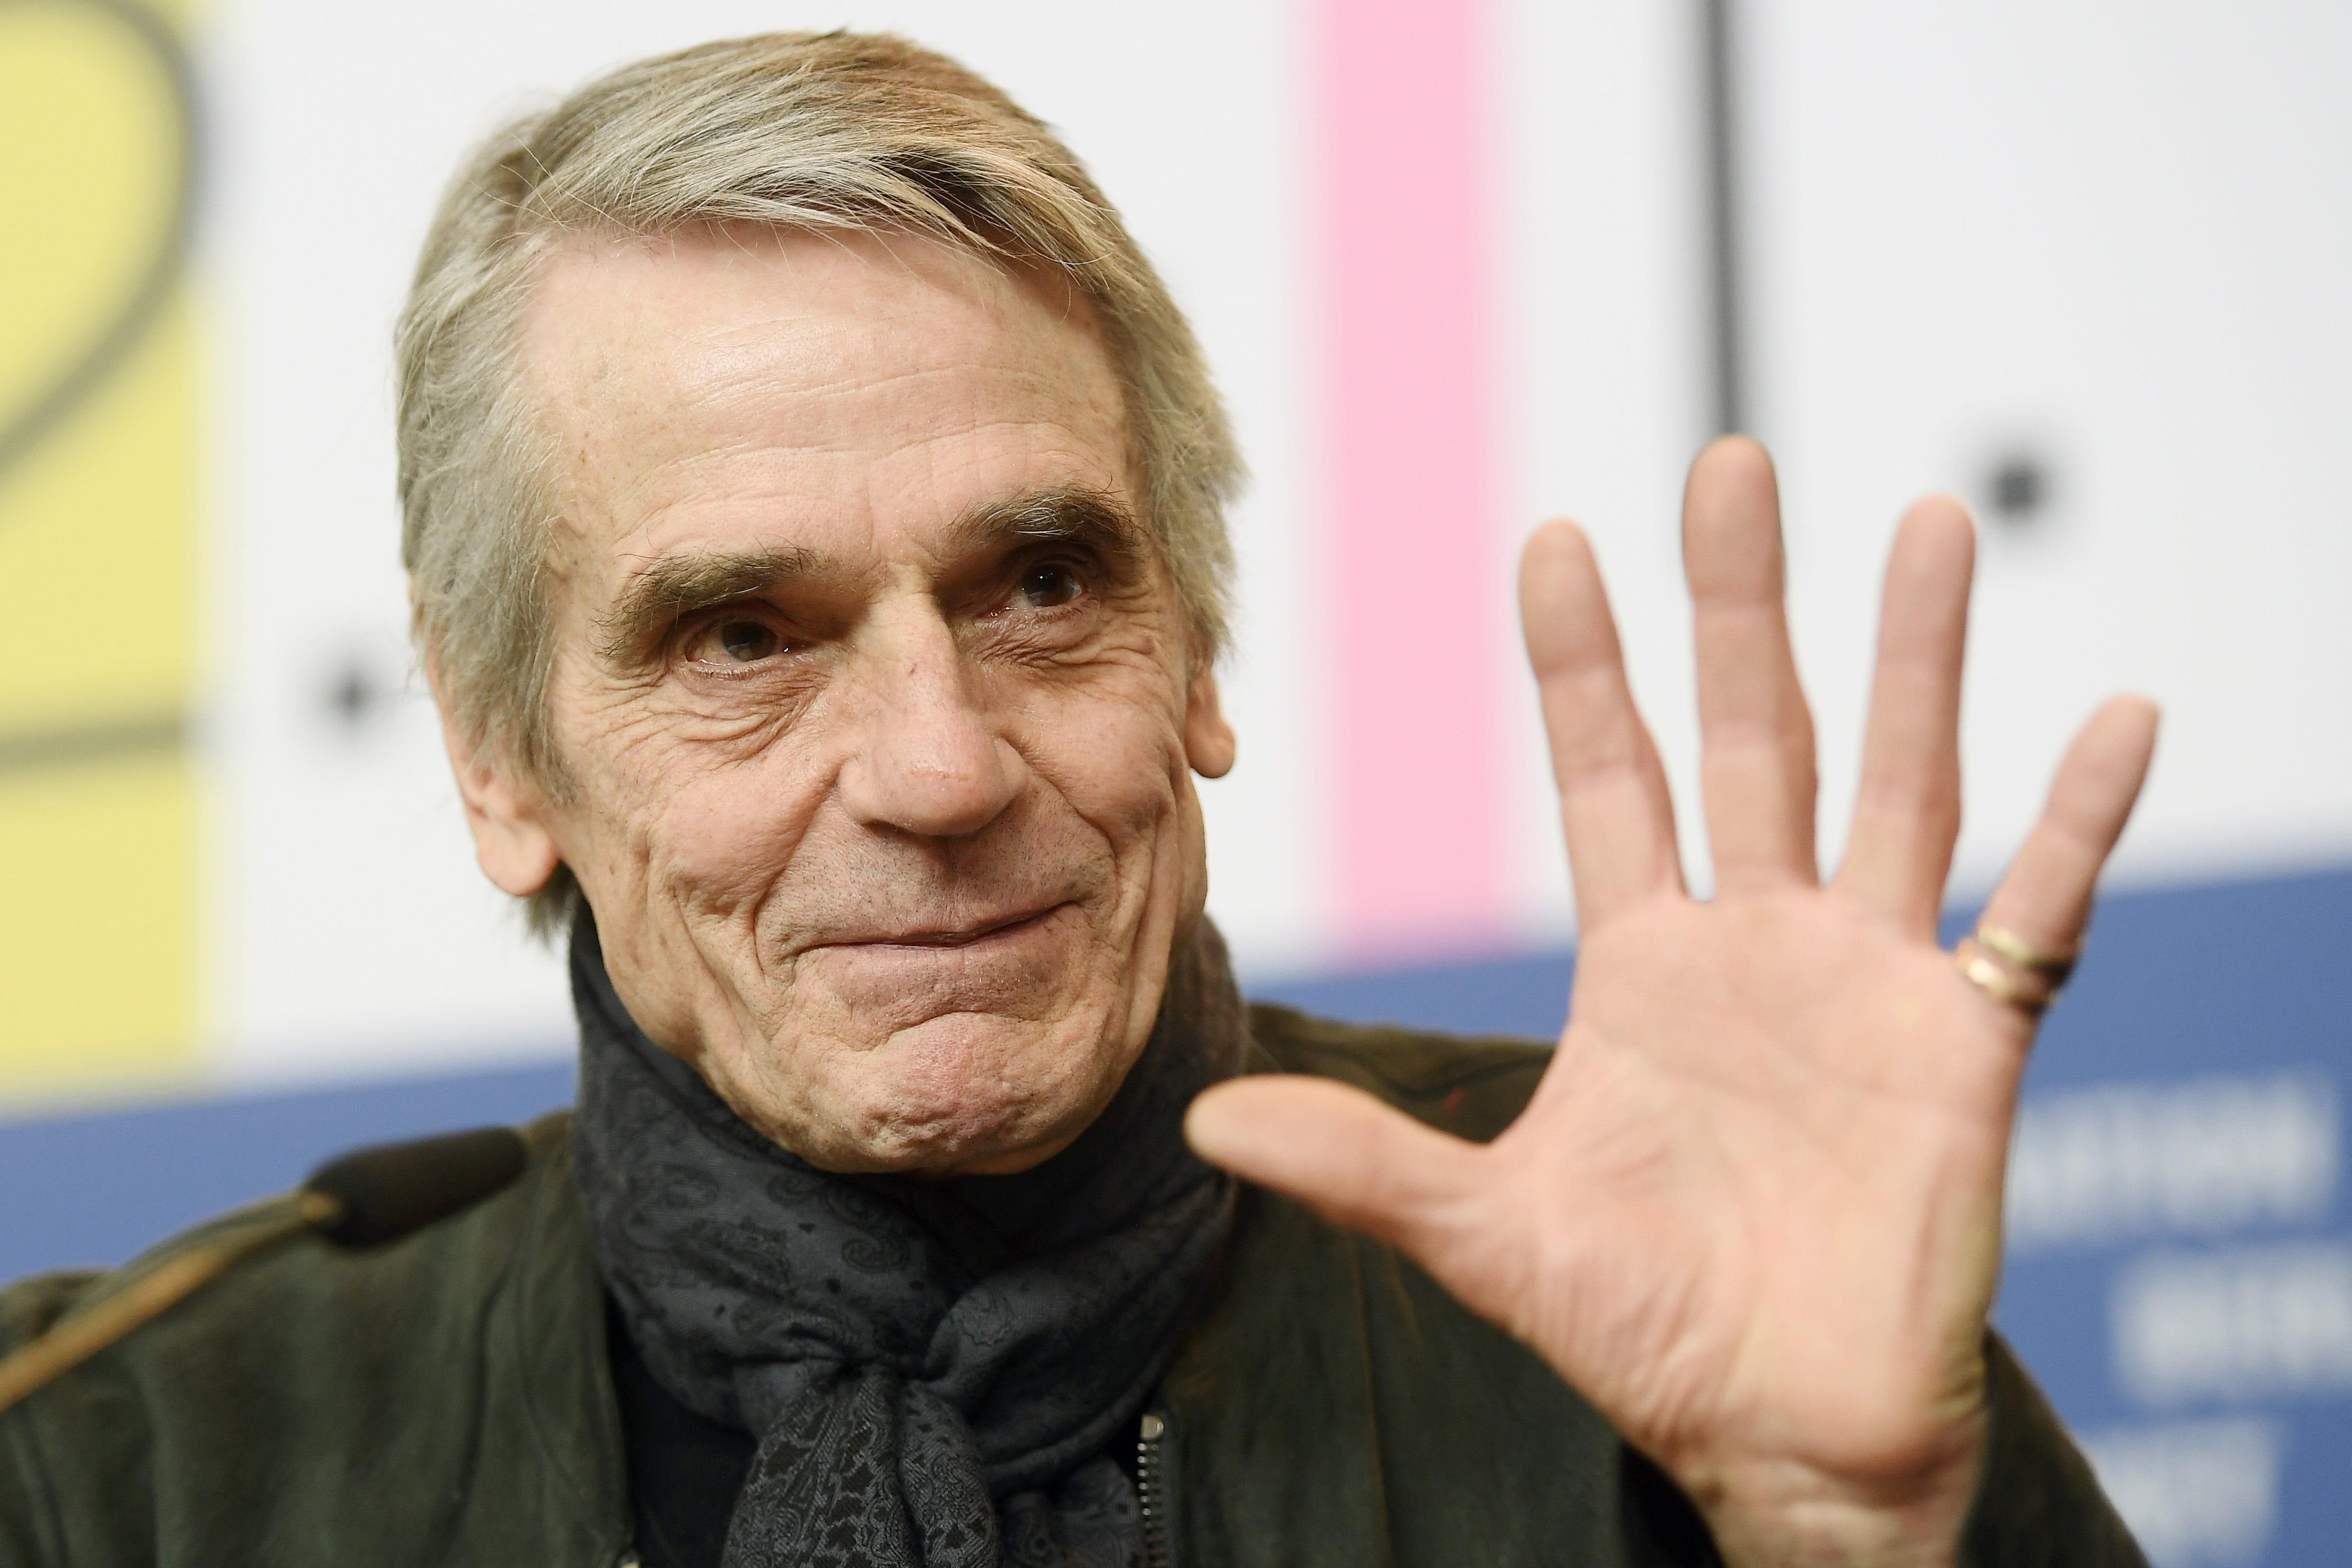 Jeremy Irons walks back anti-abortion, gay marriage comments at Berlin Film Festival